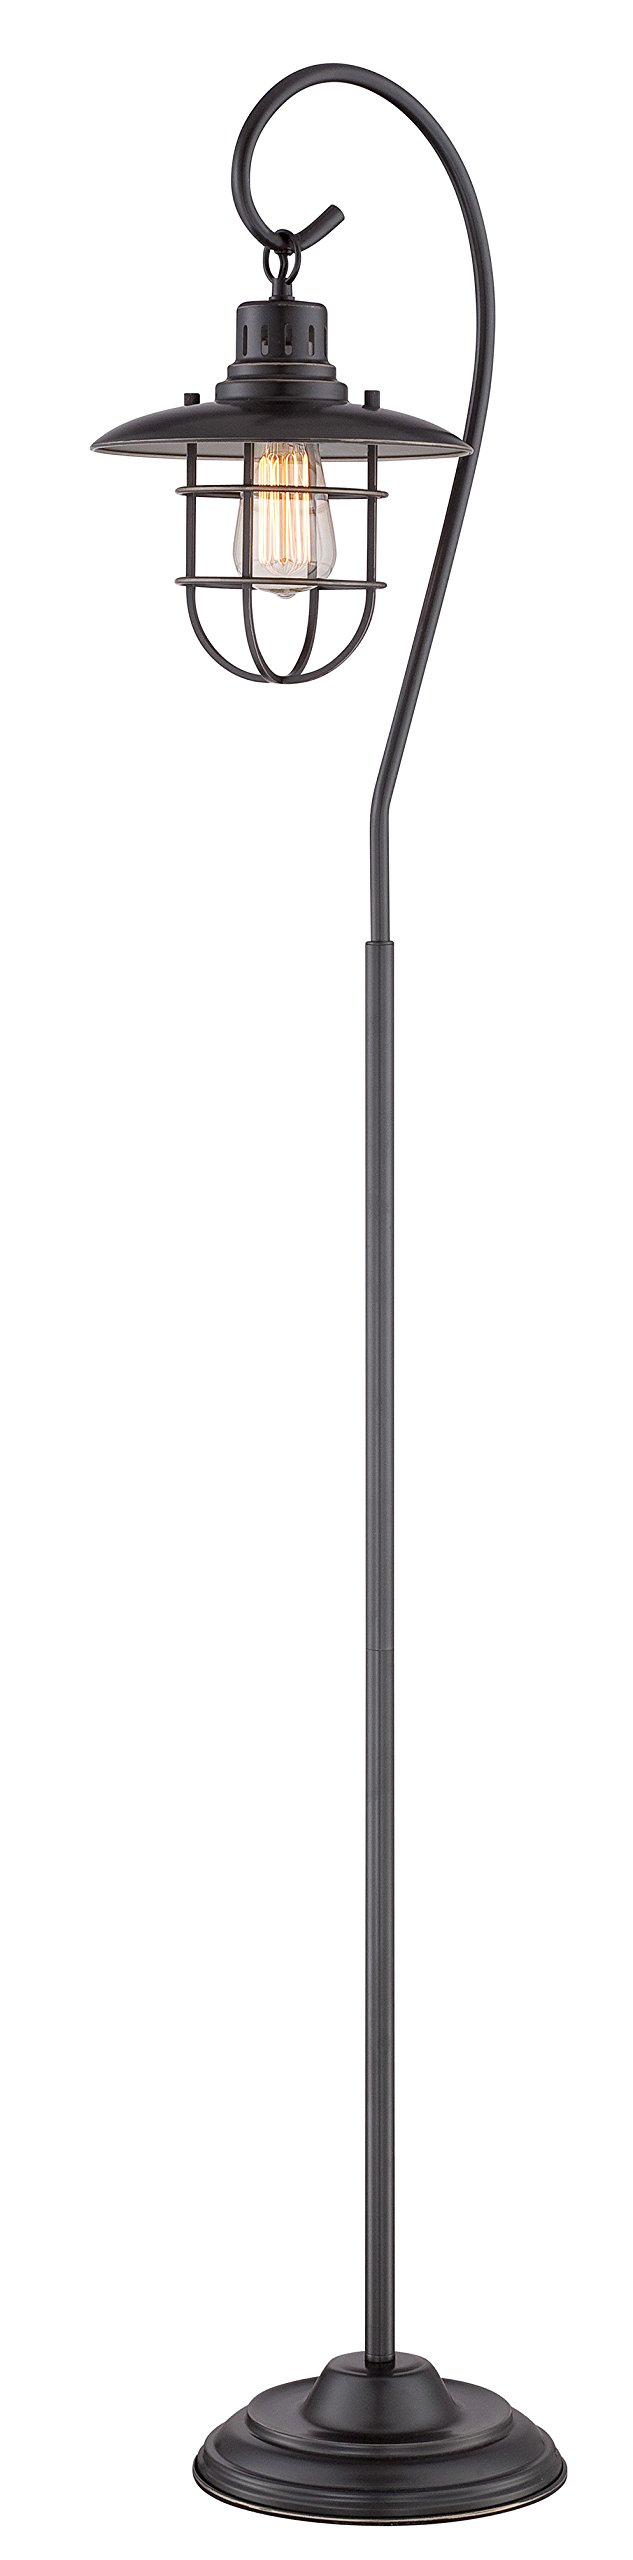 Lite Source Floor Lamps Ls-81456D/Brz Lanterna Ii Floor Lamp, Dark Bronze by Lite Source